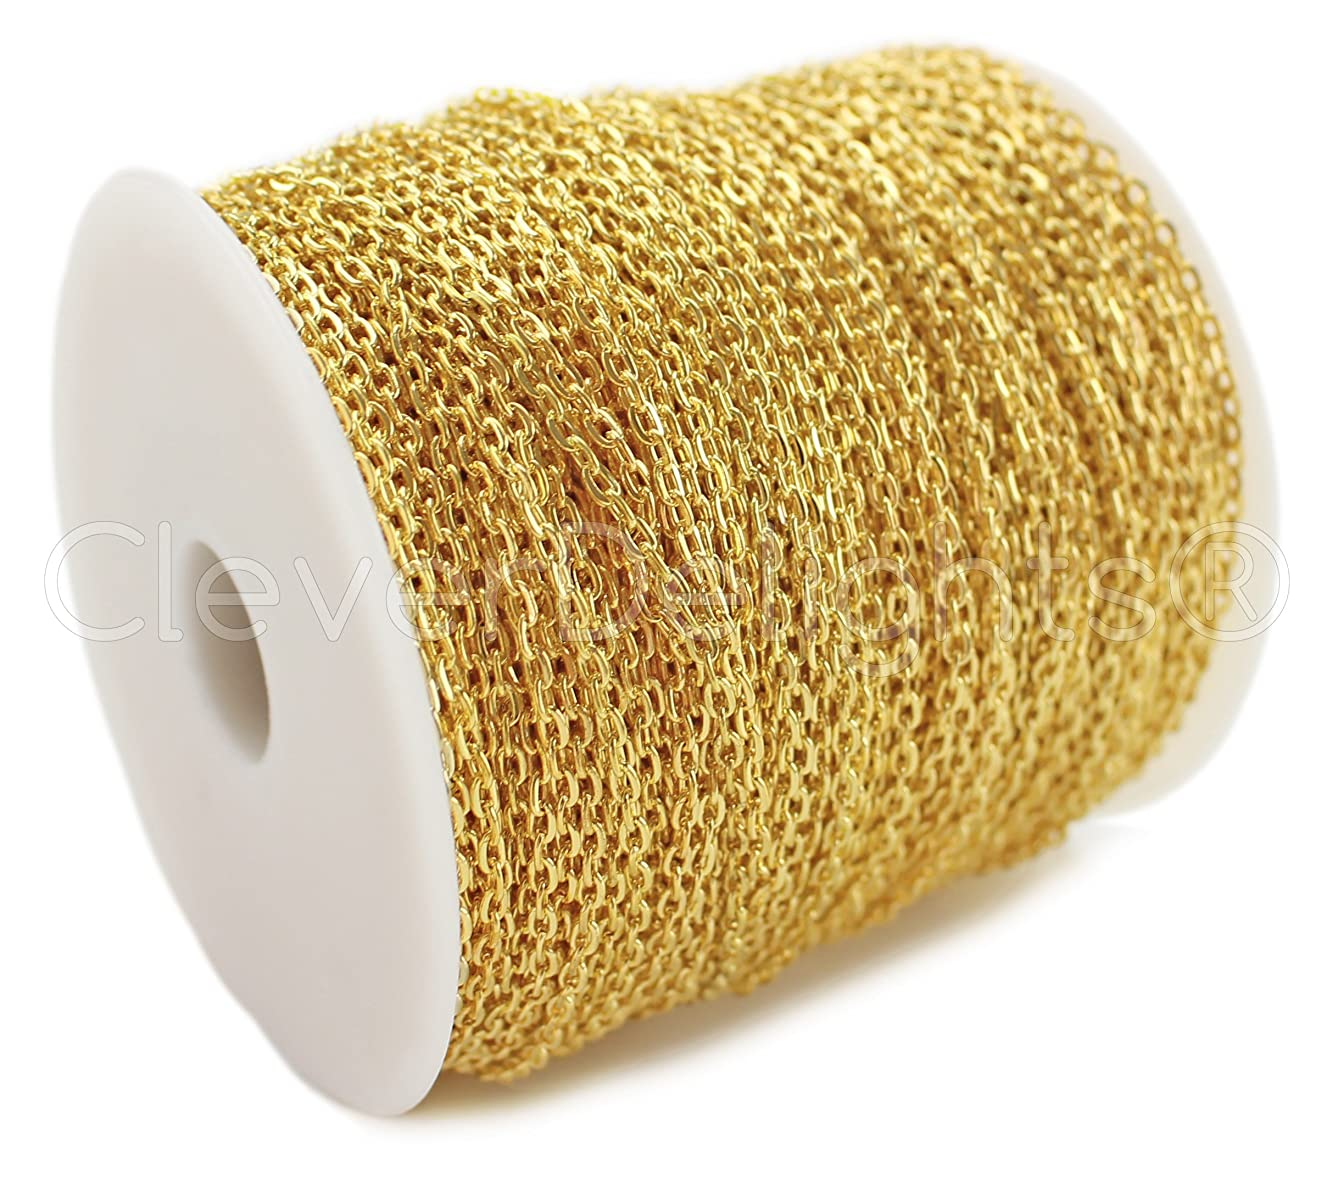 CleverDelights Cable Chain Spool - 330 Feet - Gold Color - 2x3mm Link - Rolo Chain Bulk Roll